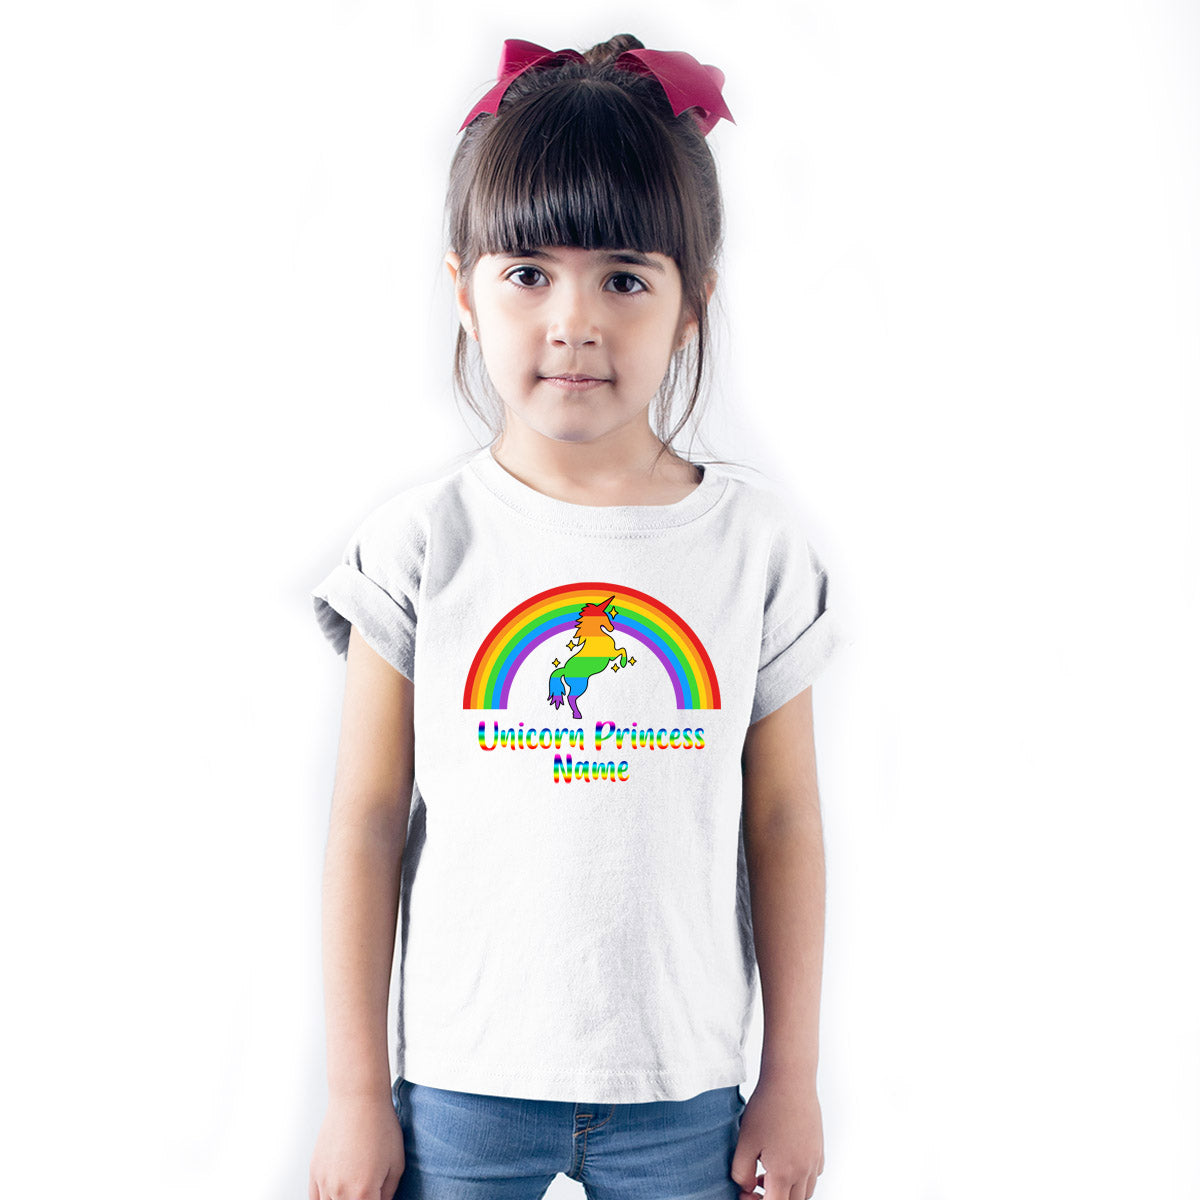 Sprinklecart Customized Name Printed Unicorn Princess Kids Poly-Cotton T Shirt Wear (White)